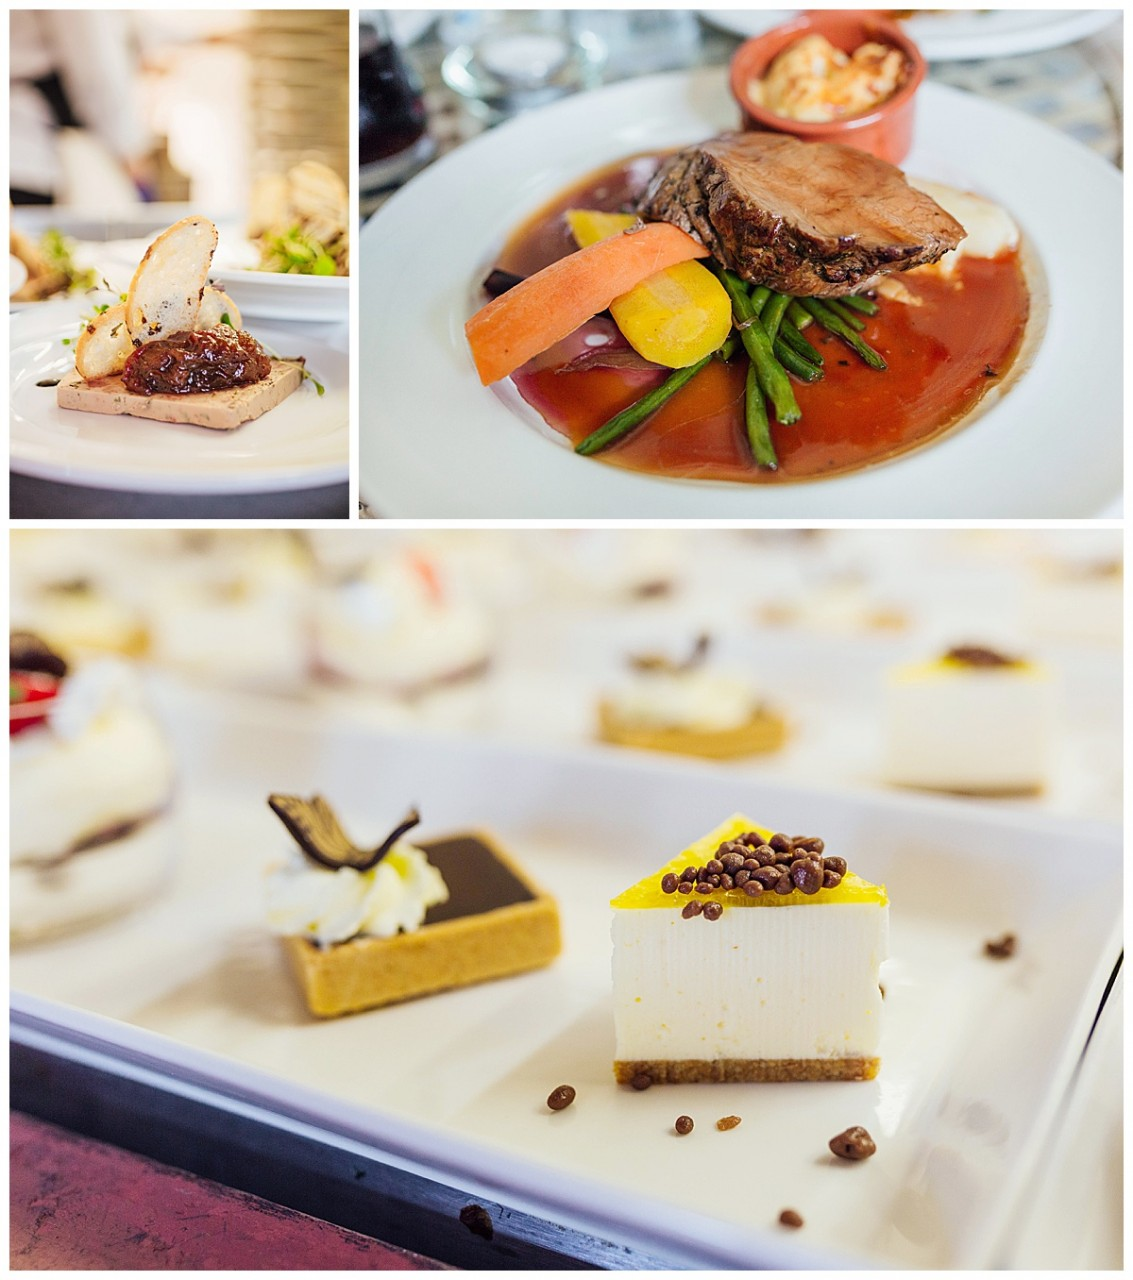 Coombe Abbey food